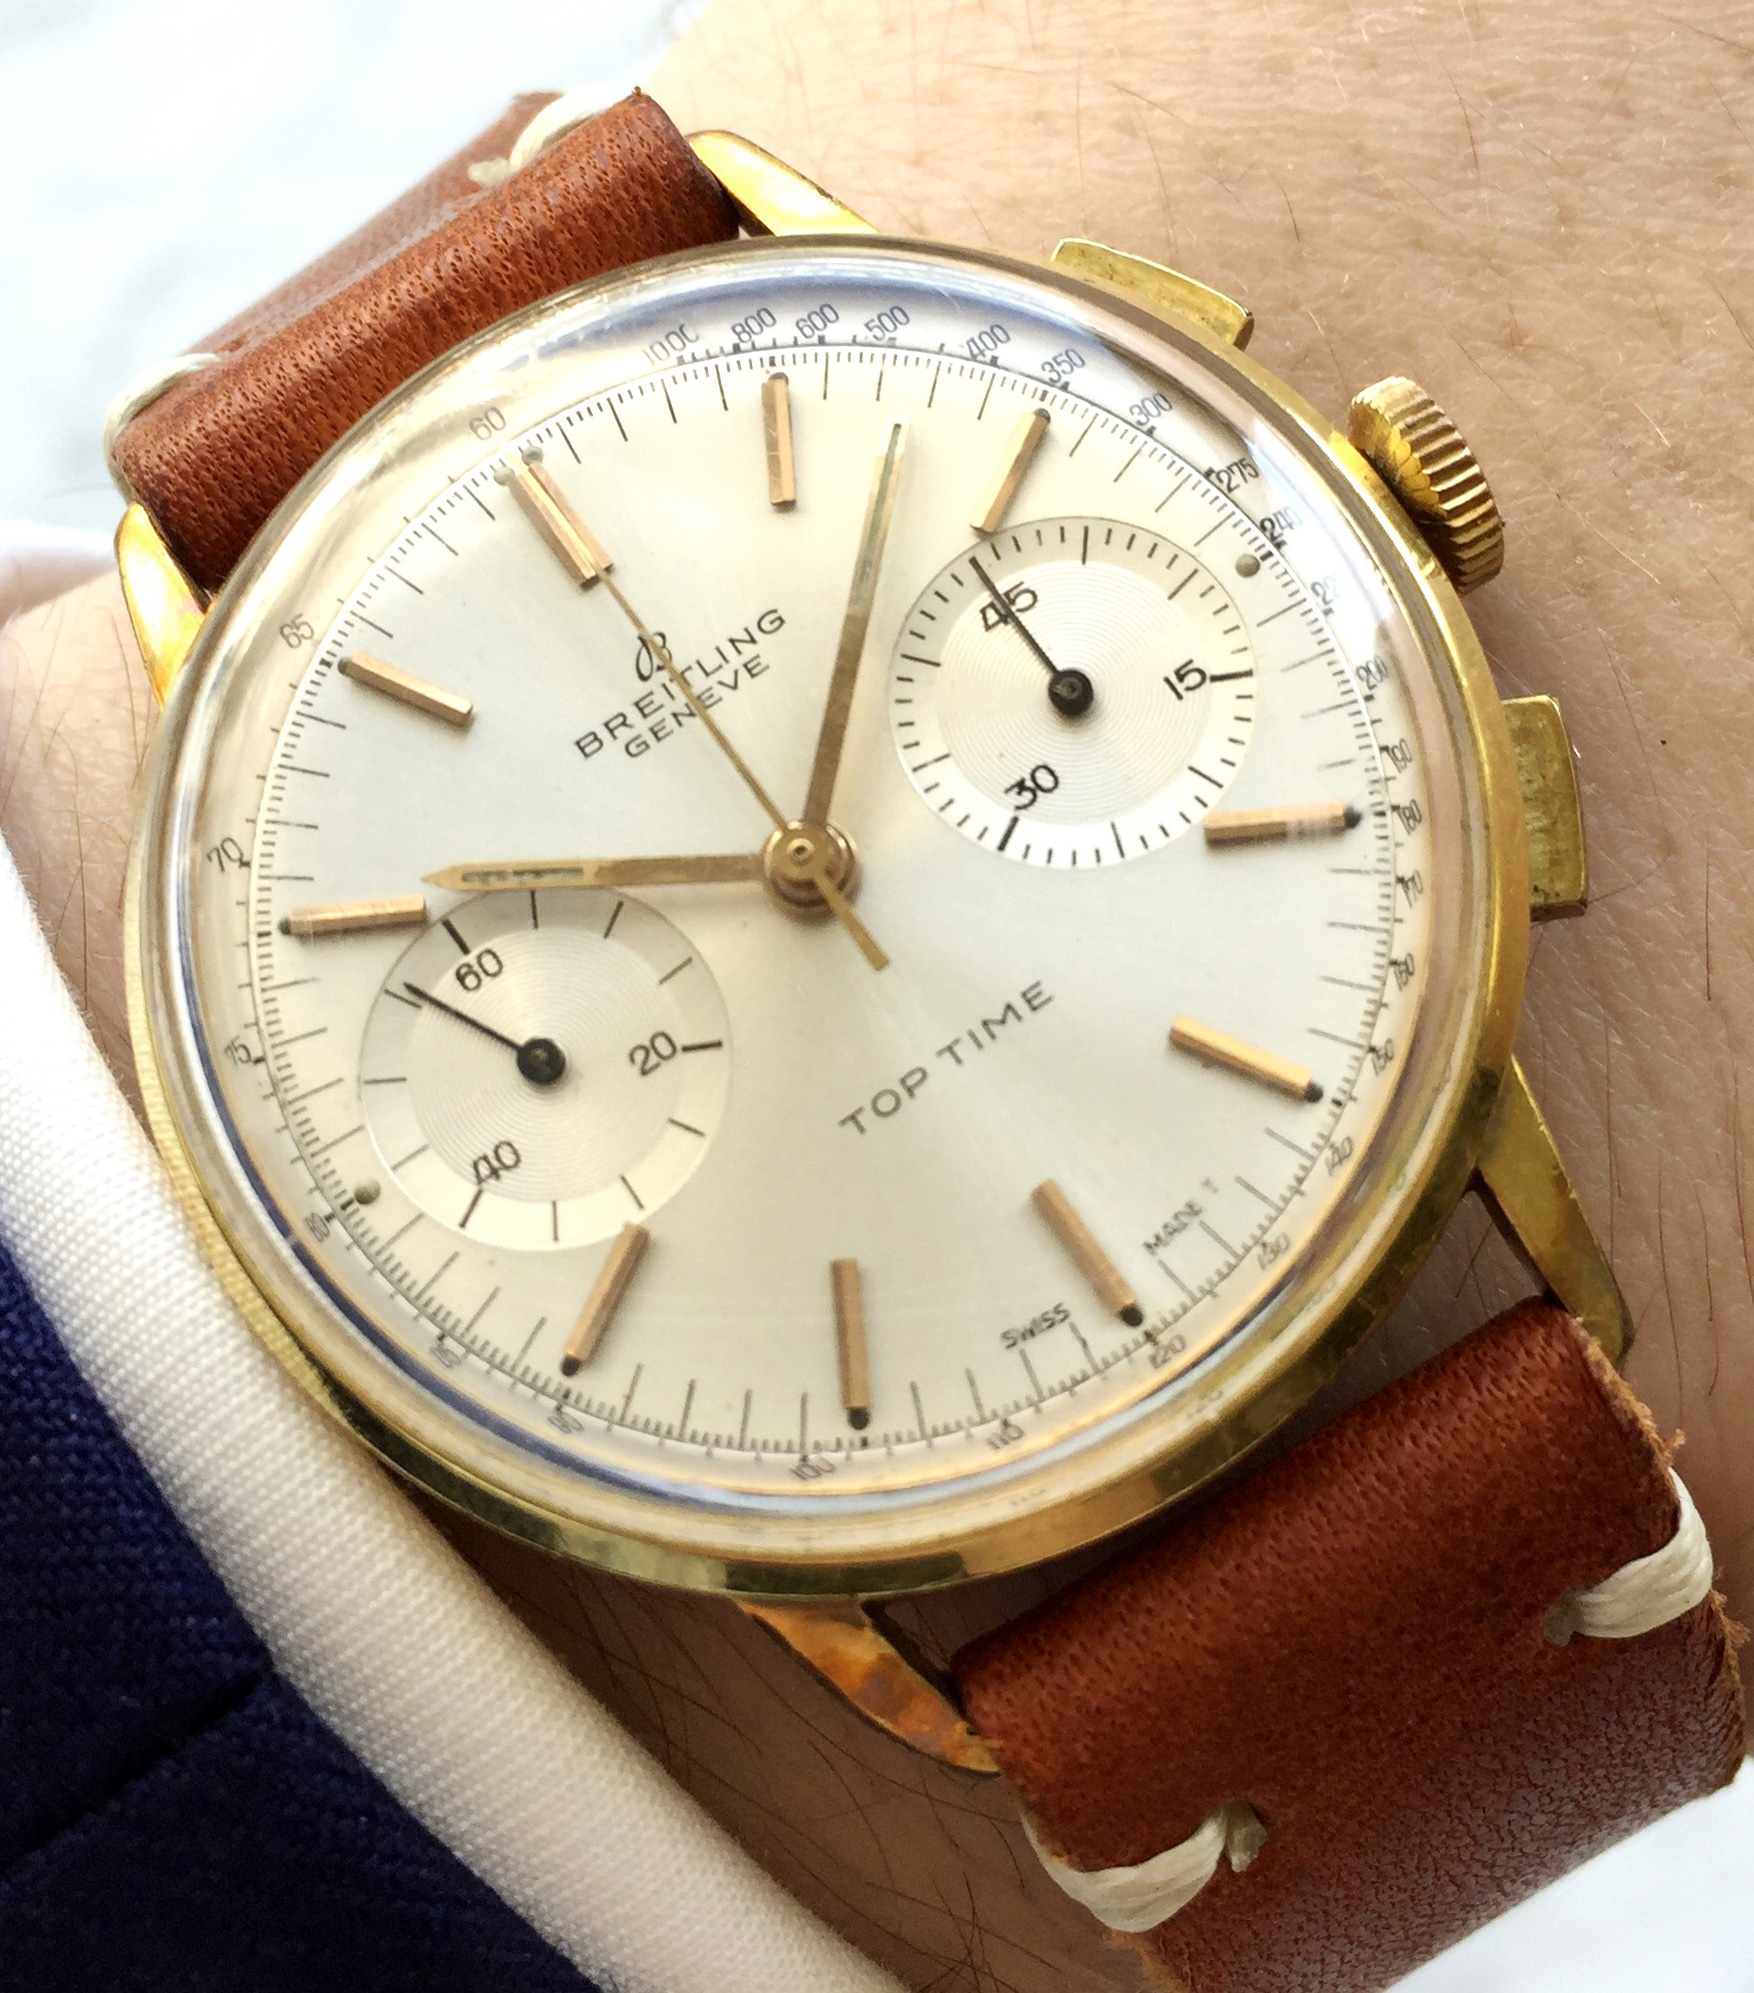 Superb Condition Vintage Breitling Top Time Gold Plated